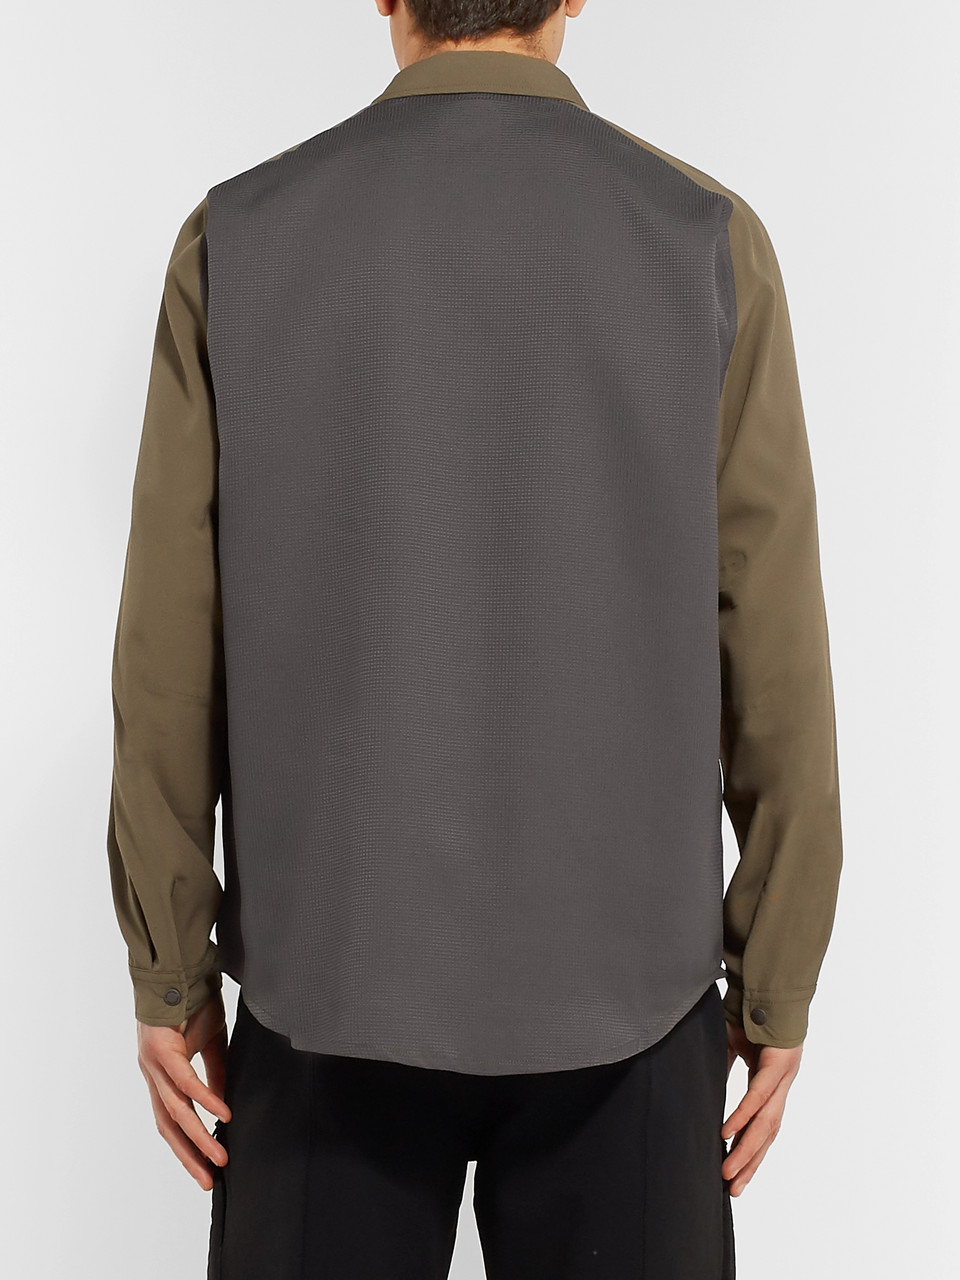 And Wander Reflective-Trimmed Shell and Mesh Shirt